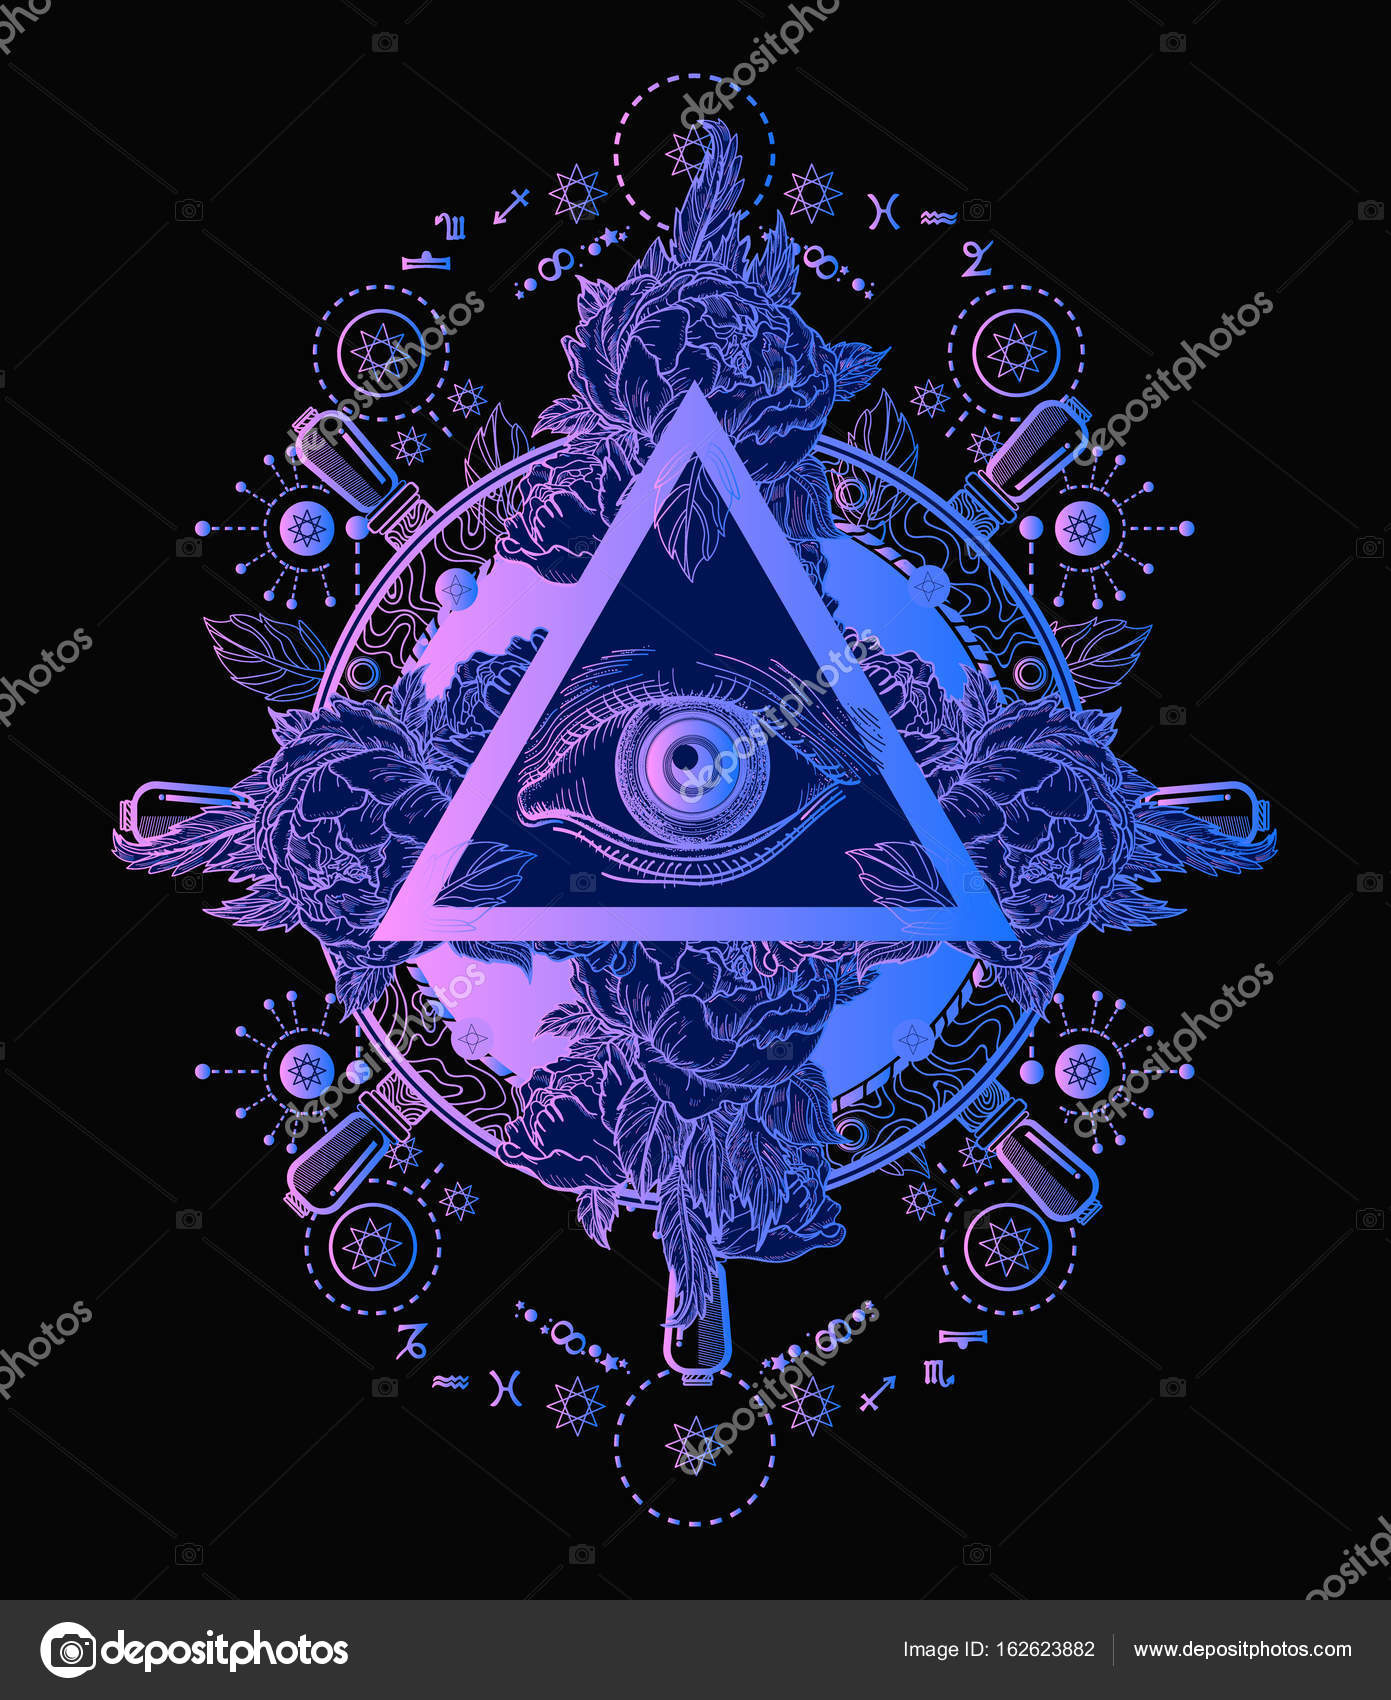 All seeing eye pyramid poster and t-shirt design